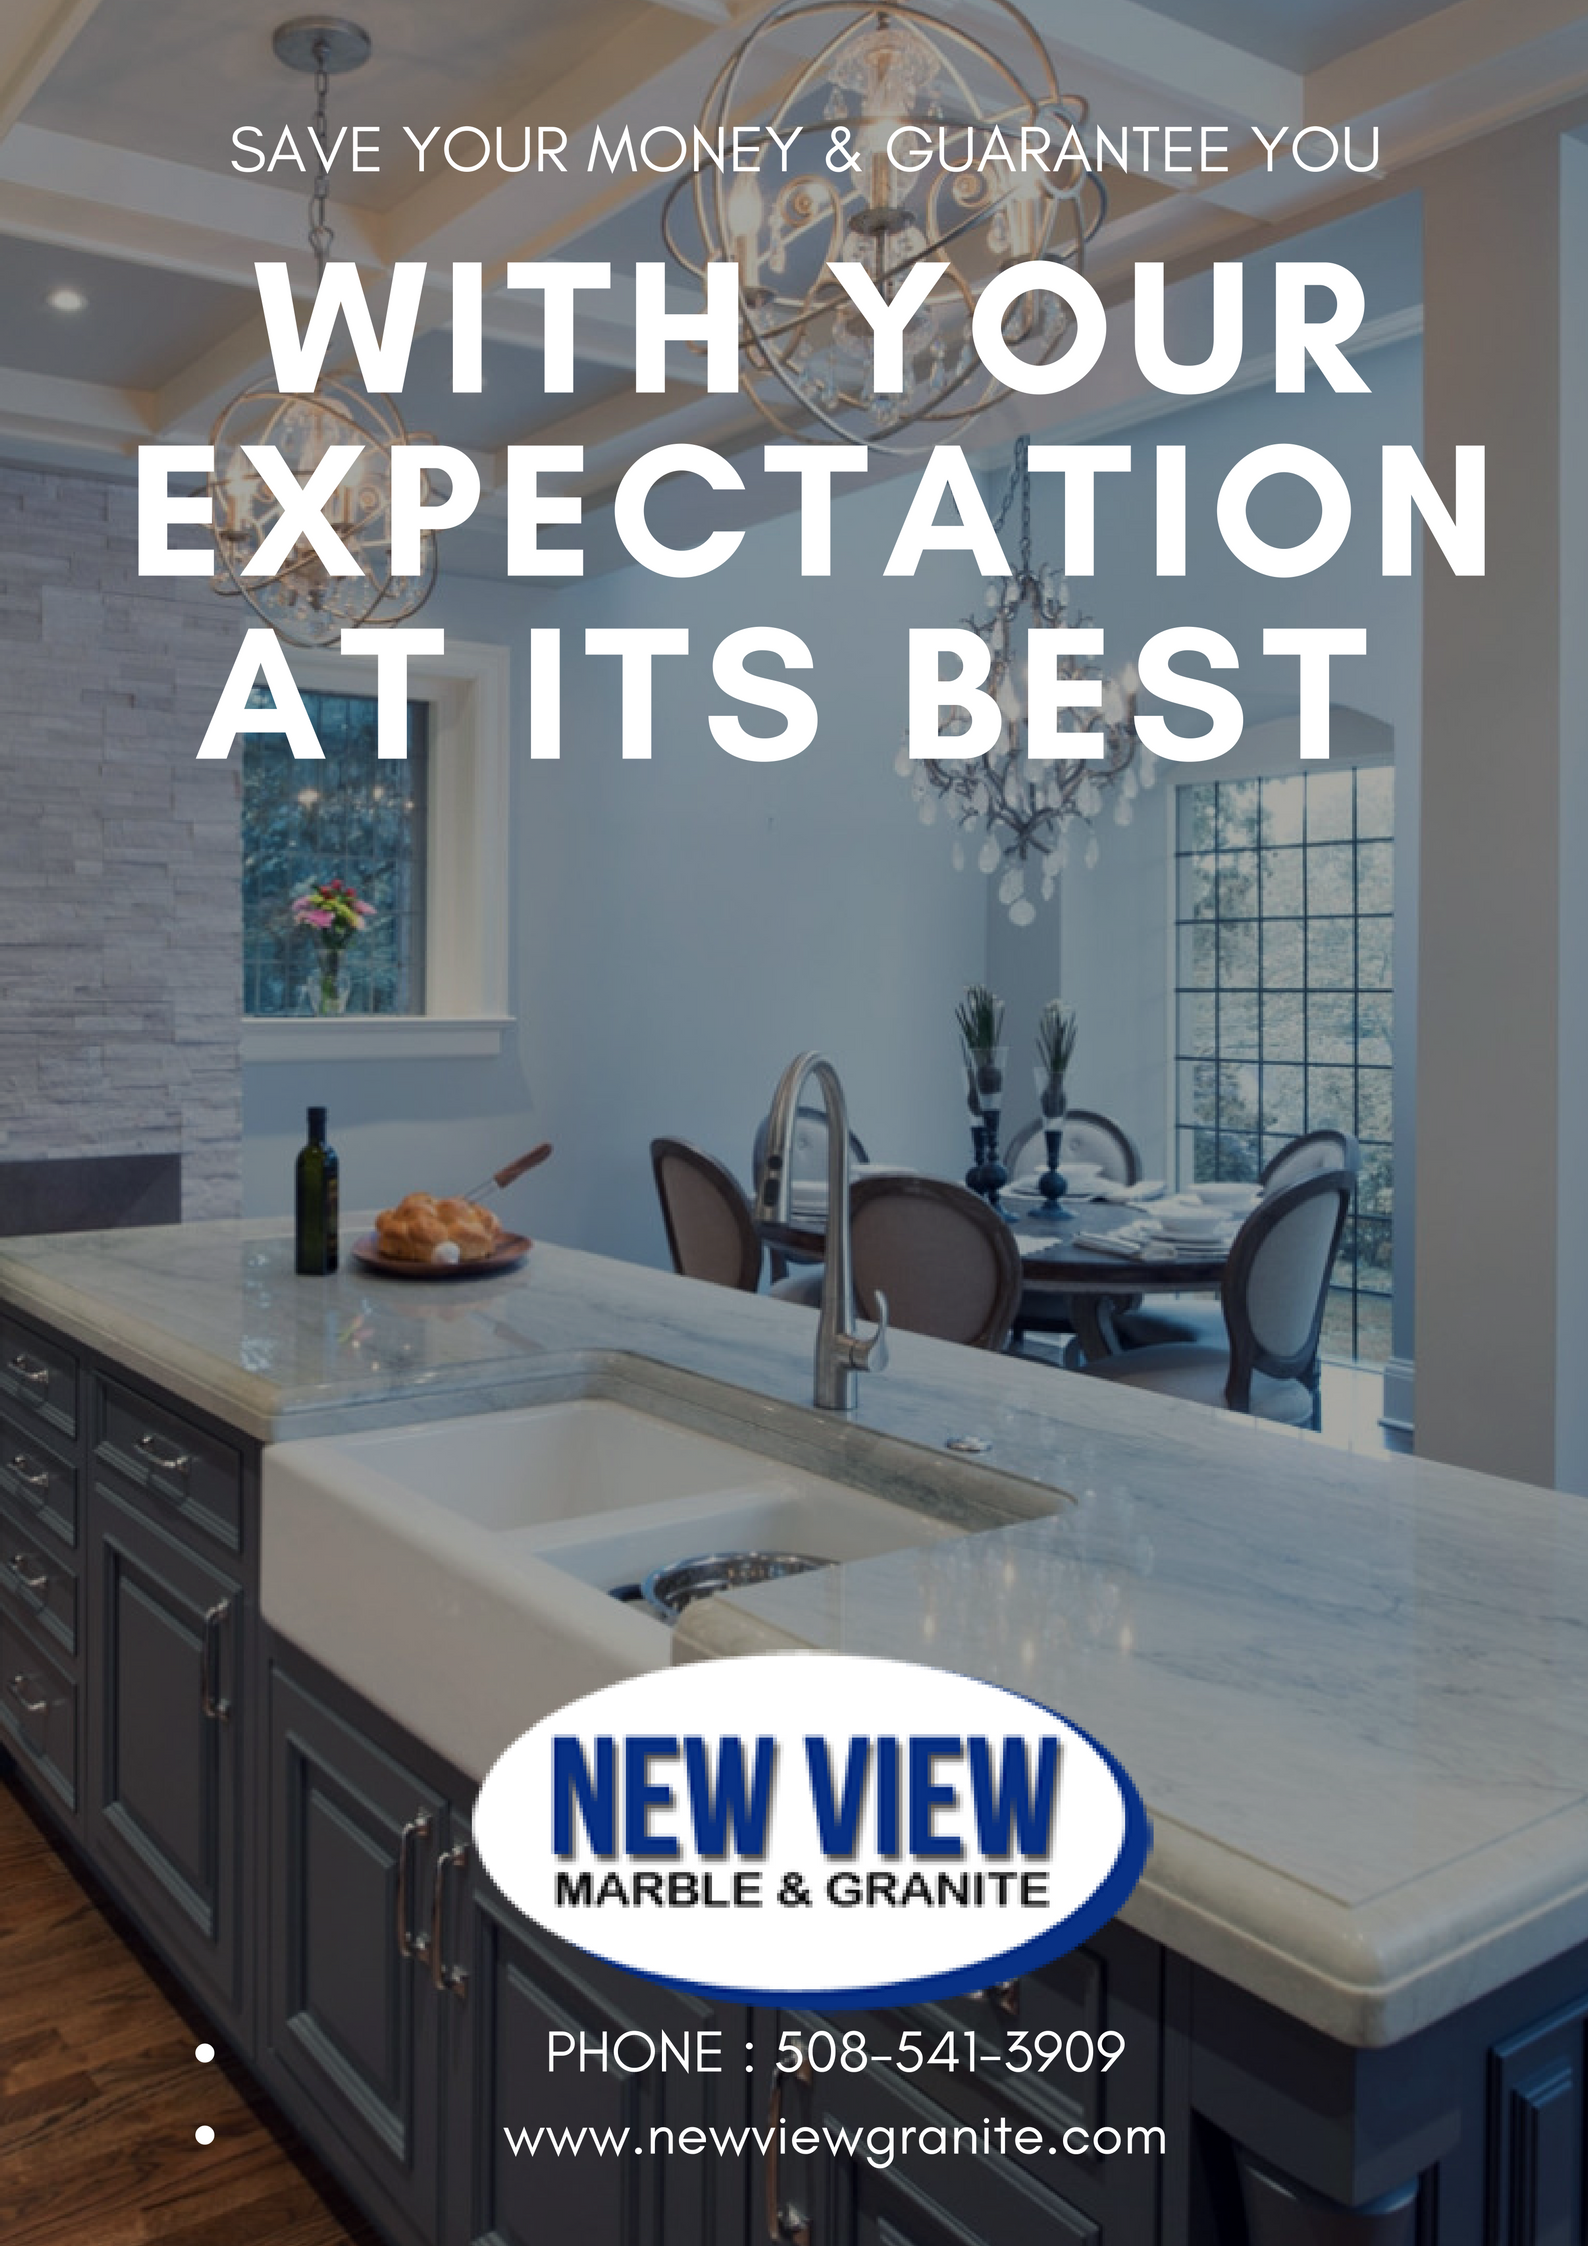 Save Your Money And Guarantee You With Your Expectation At Its